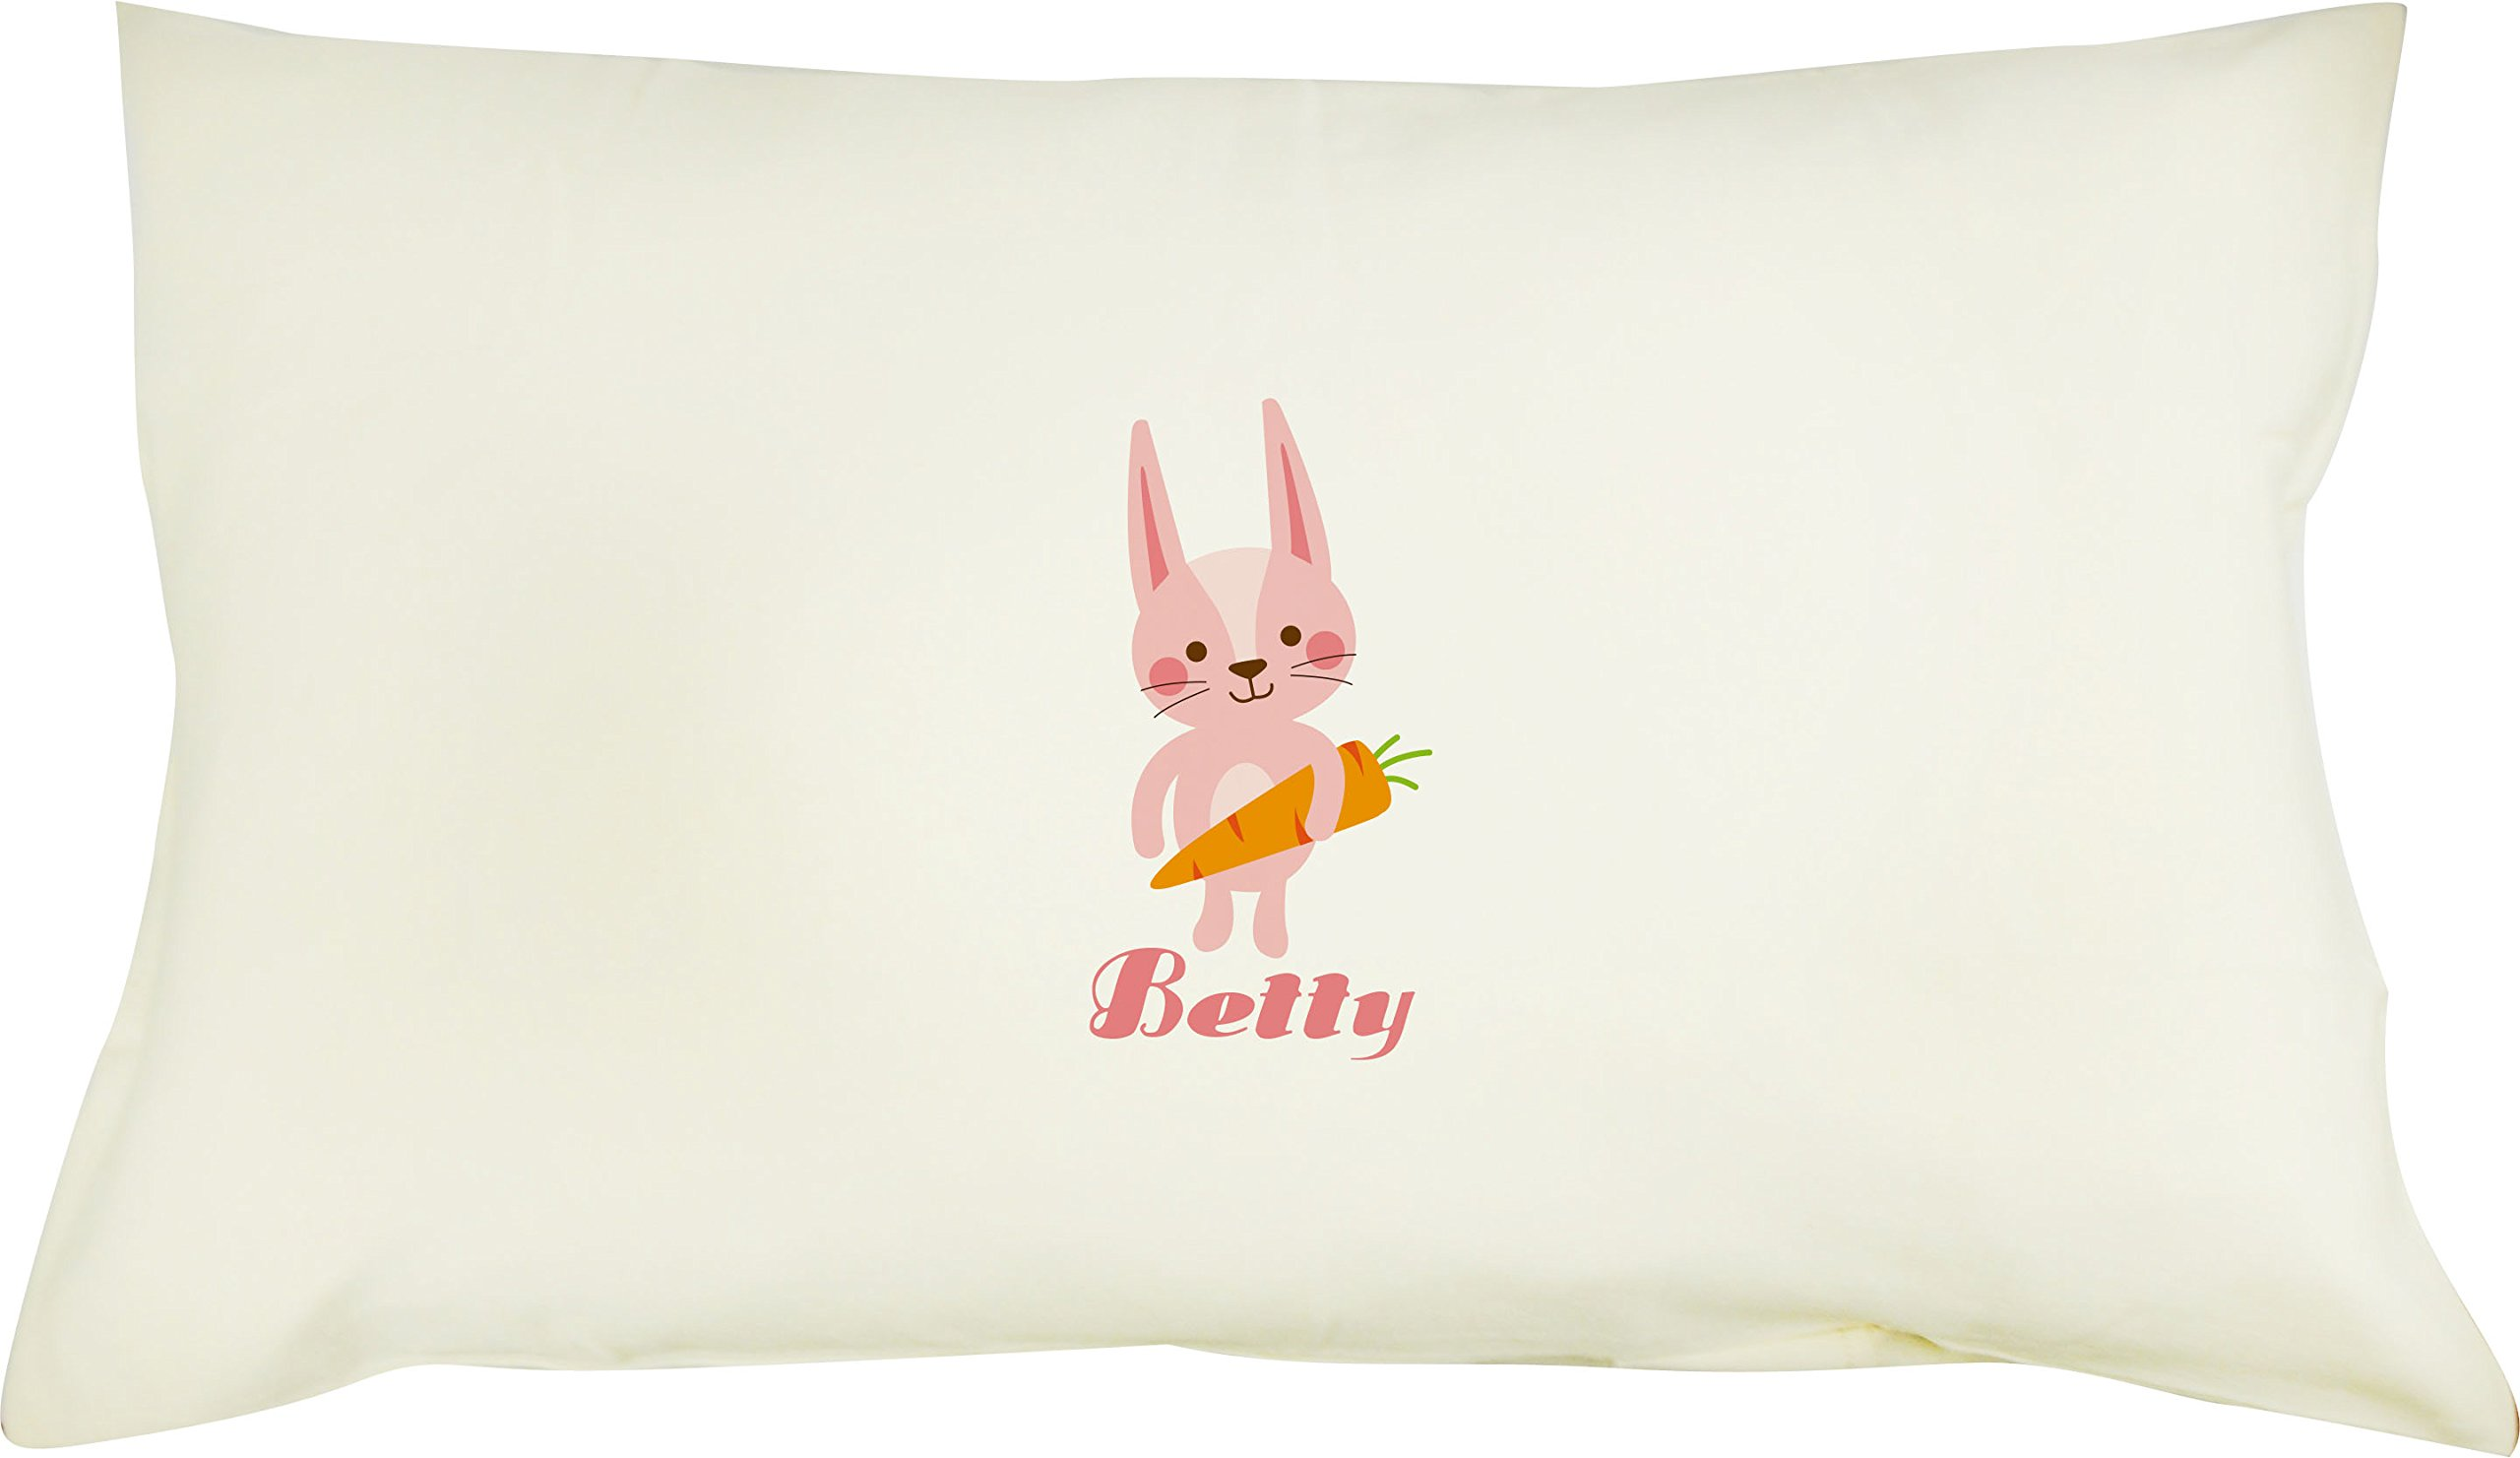 TotMart Personalized Girl's 100% Cotton Pillowcase with Hypoallergenic Pillow Standard 19 X 12.5 (Rabbit)